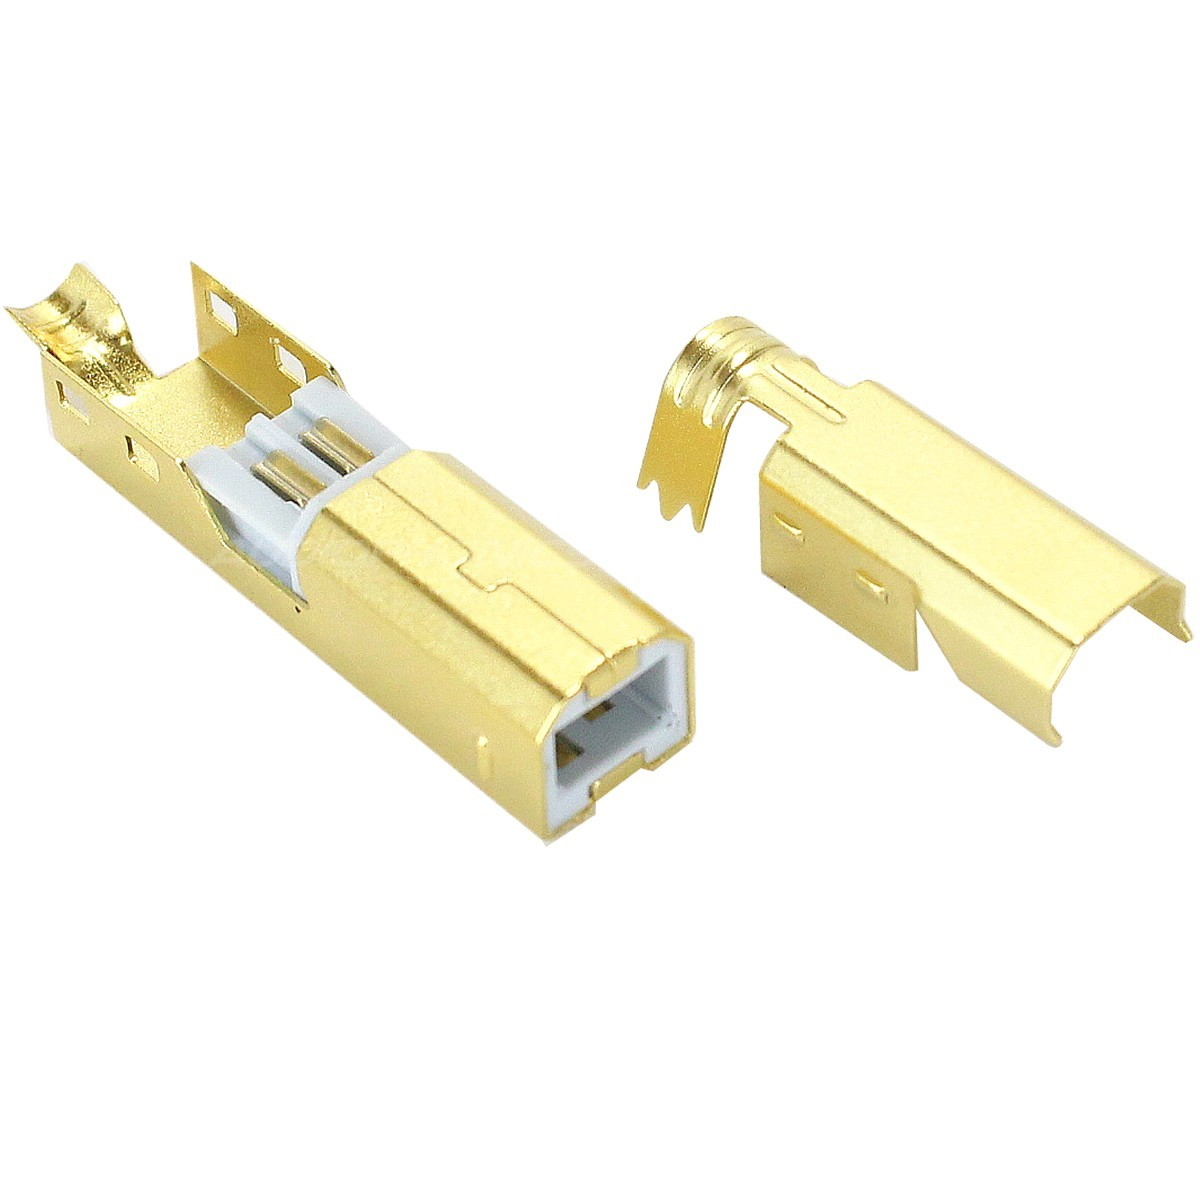 DIY USB type B Plug Gold Plated 3µ